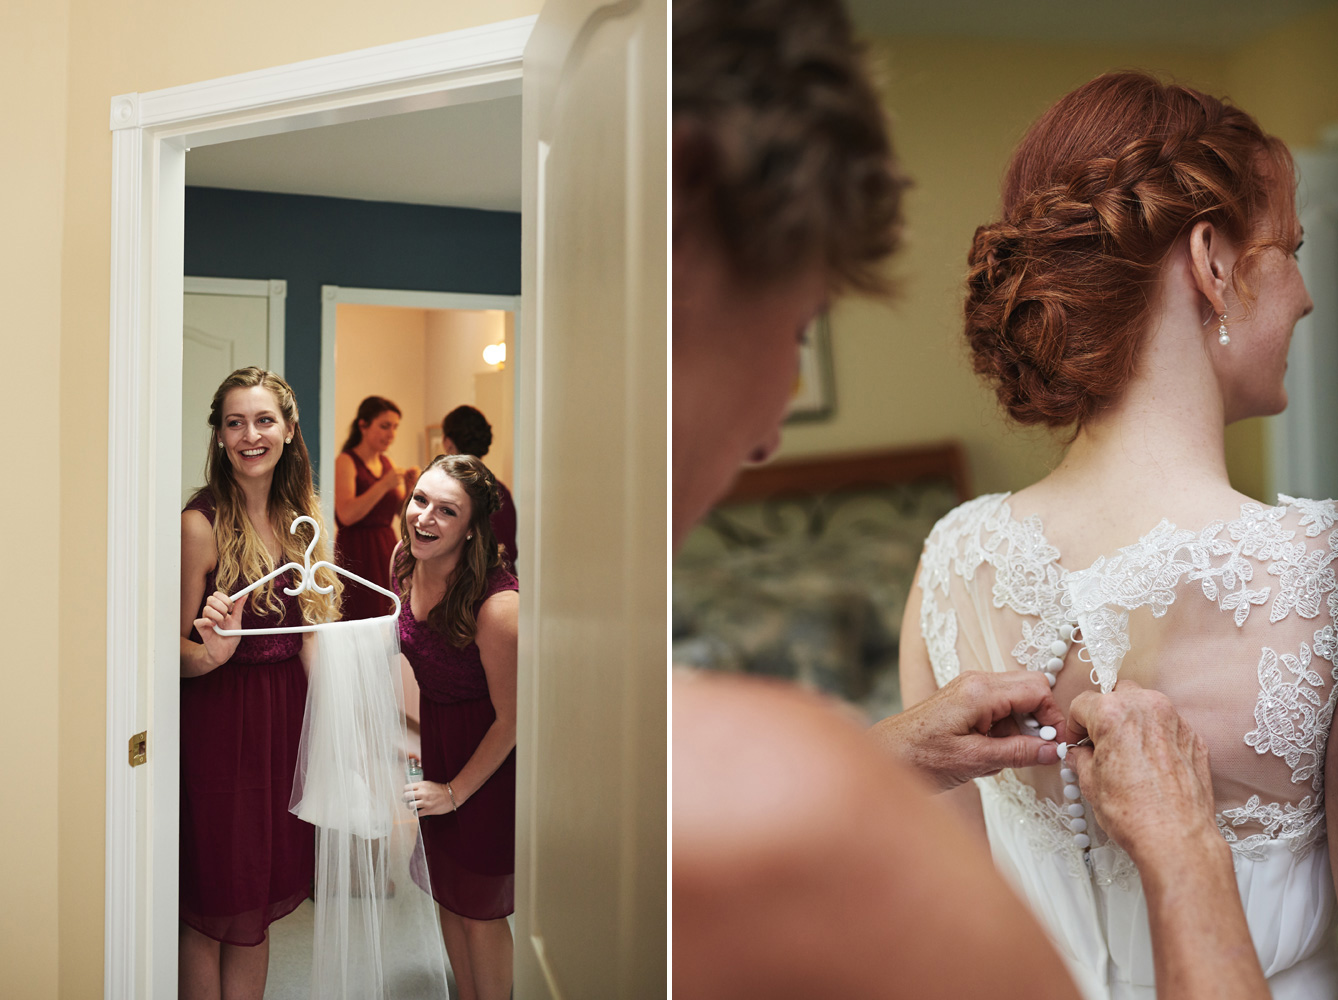 bridesmaids-getting-ready-in-the-morning-2.jpg